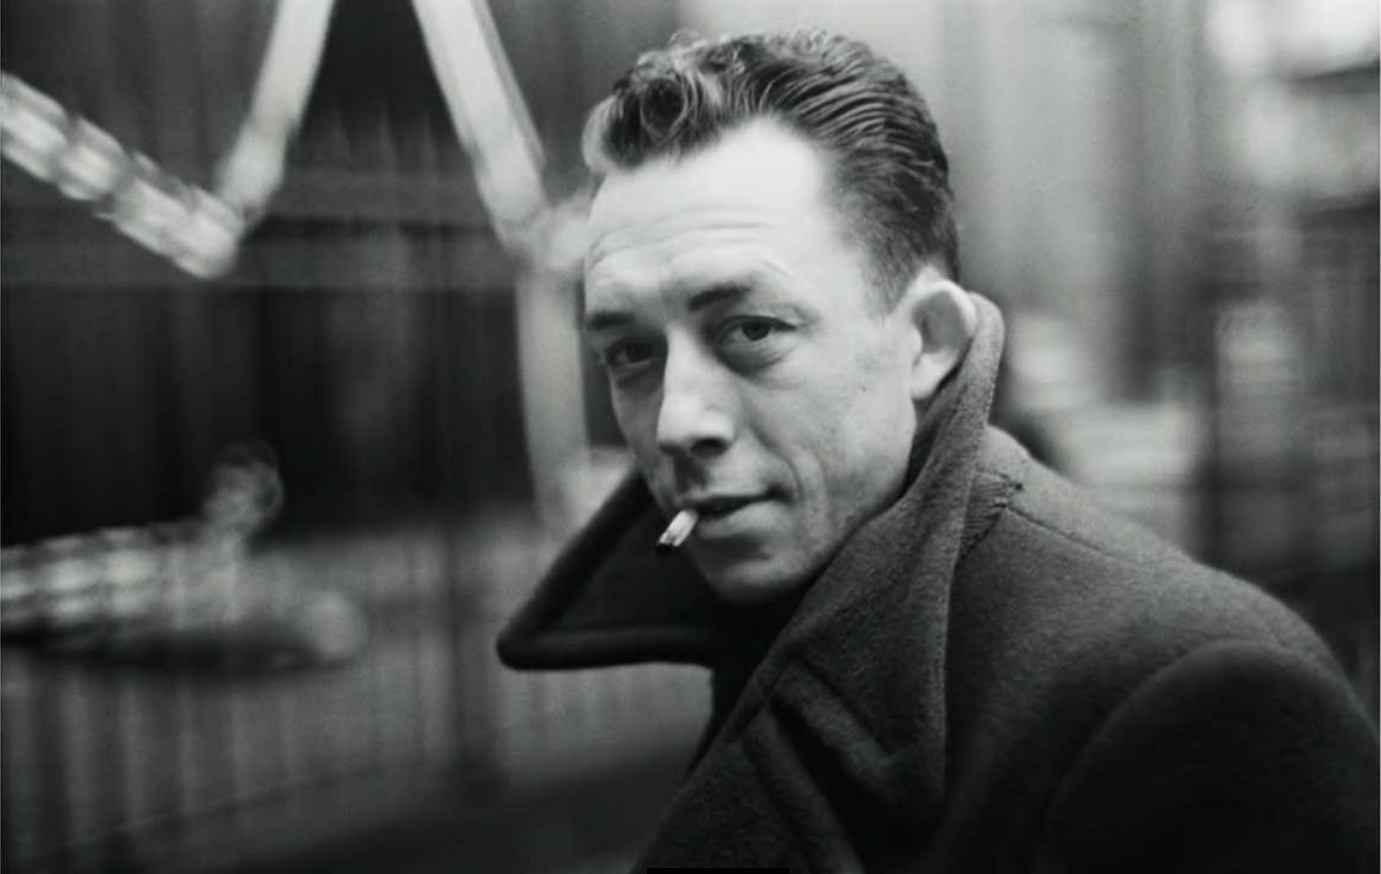 Albert Camus  is a  French philosopher  born in 1913 AD. He was only 47 when he died on January 4th, 1960 AD. He was known for his quotes which are still popular today.  Image credit: vancouversun.com